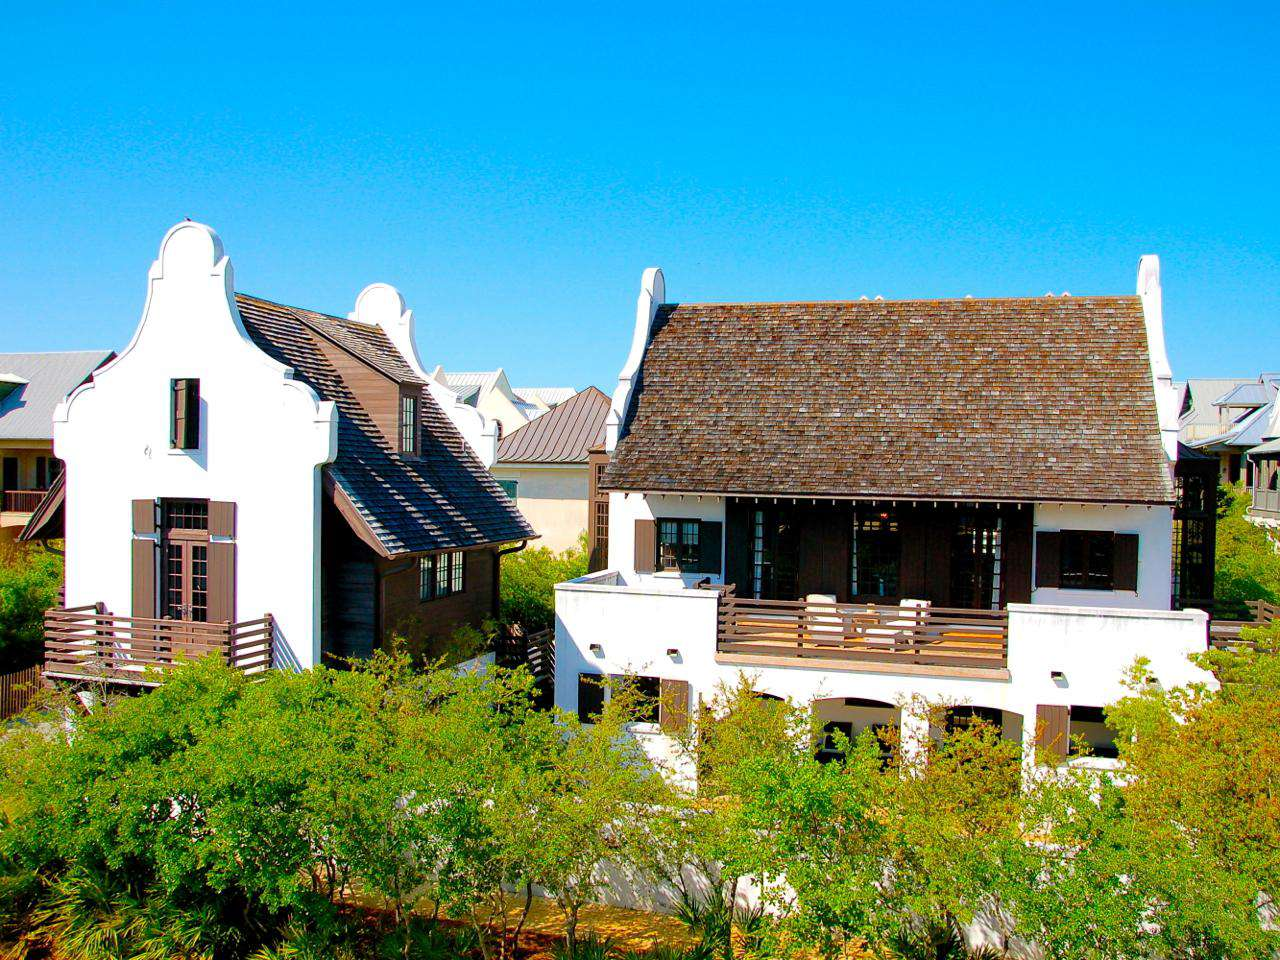 Luxury 4 Bedroom/4.5 Bath Rosemary Beach Home on South side of 30a